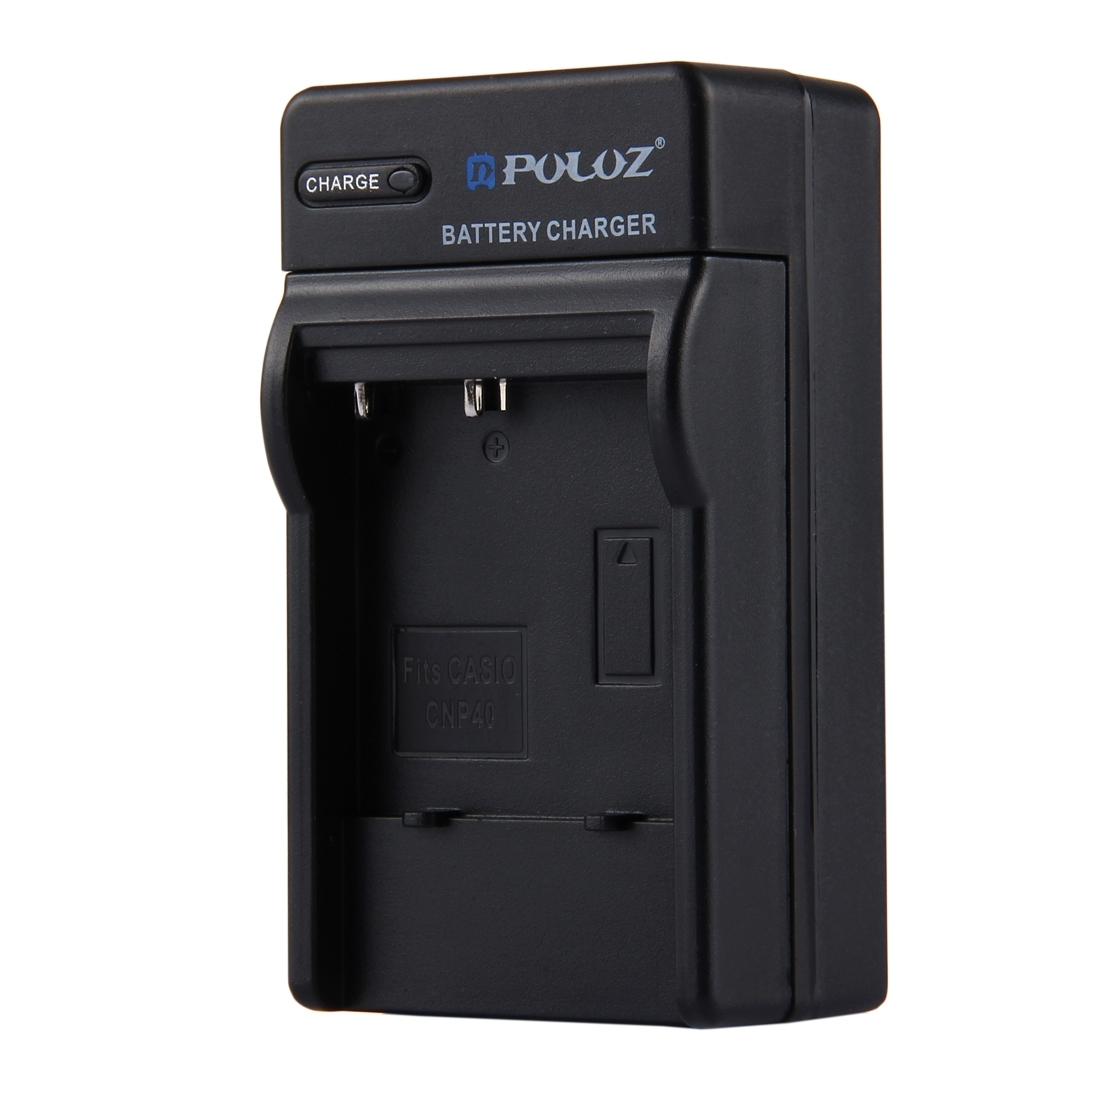 puluz us plug battery charger for casio cnp40 battery. Black Bedroom Furniture Sets. Home Design Ideas